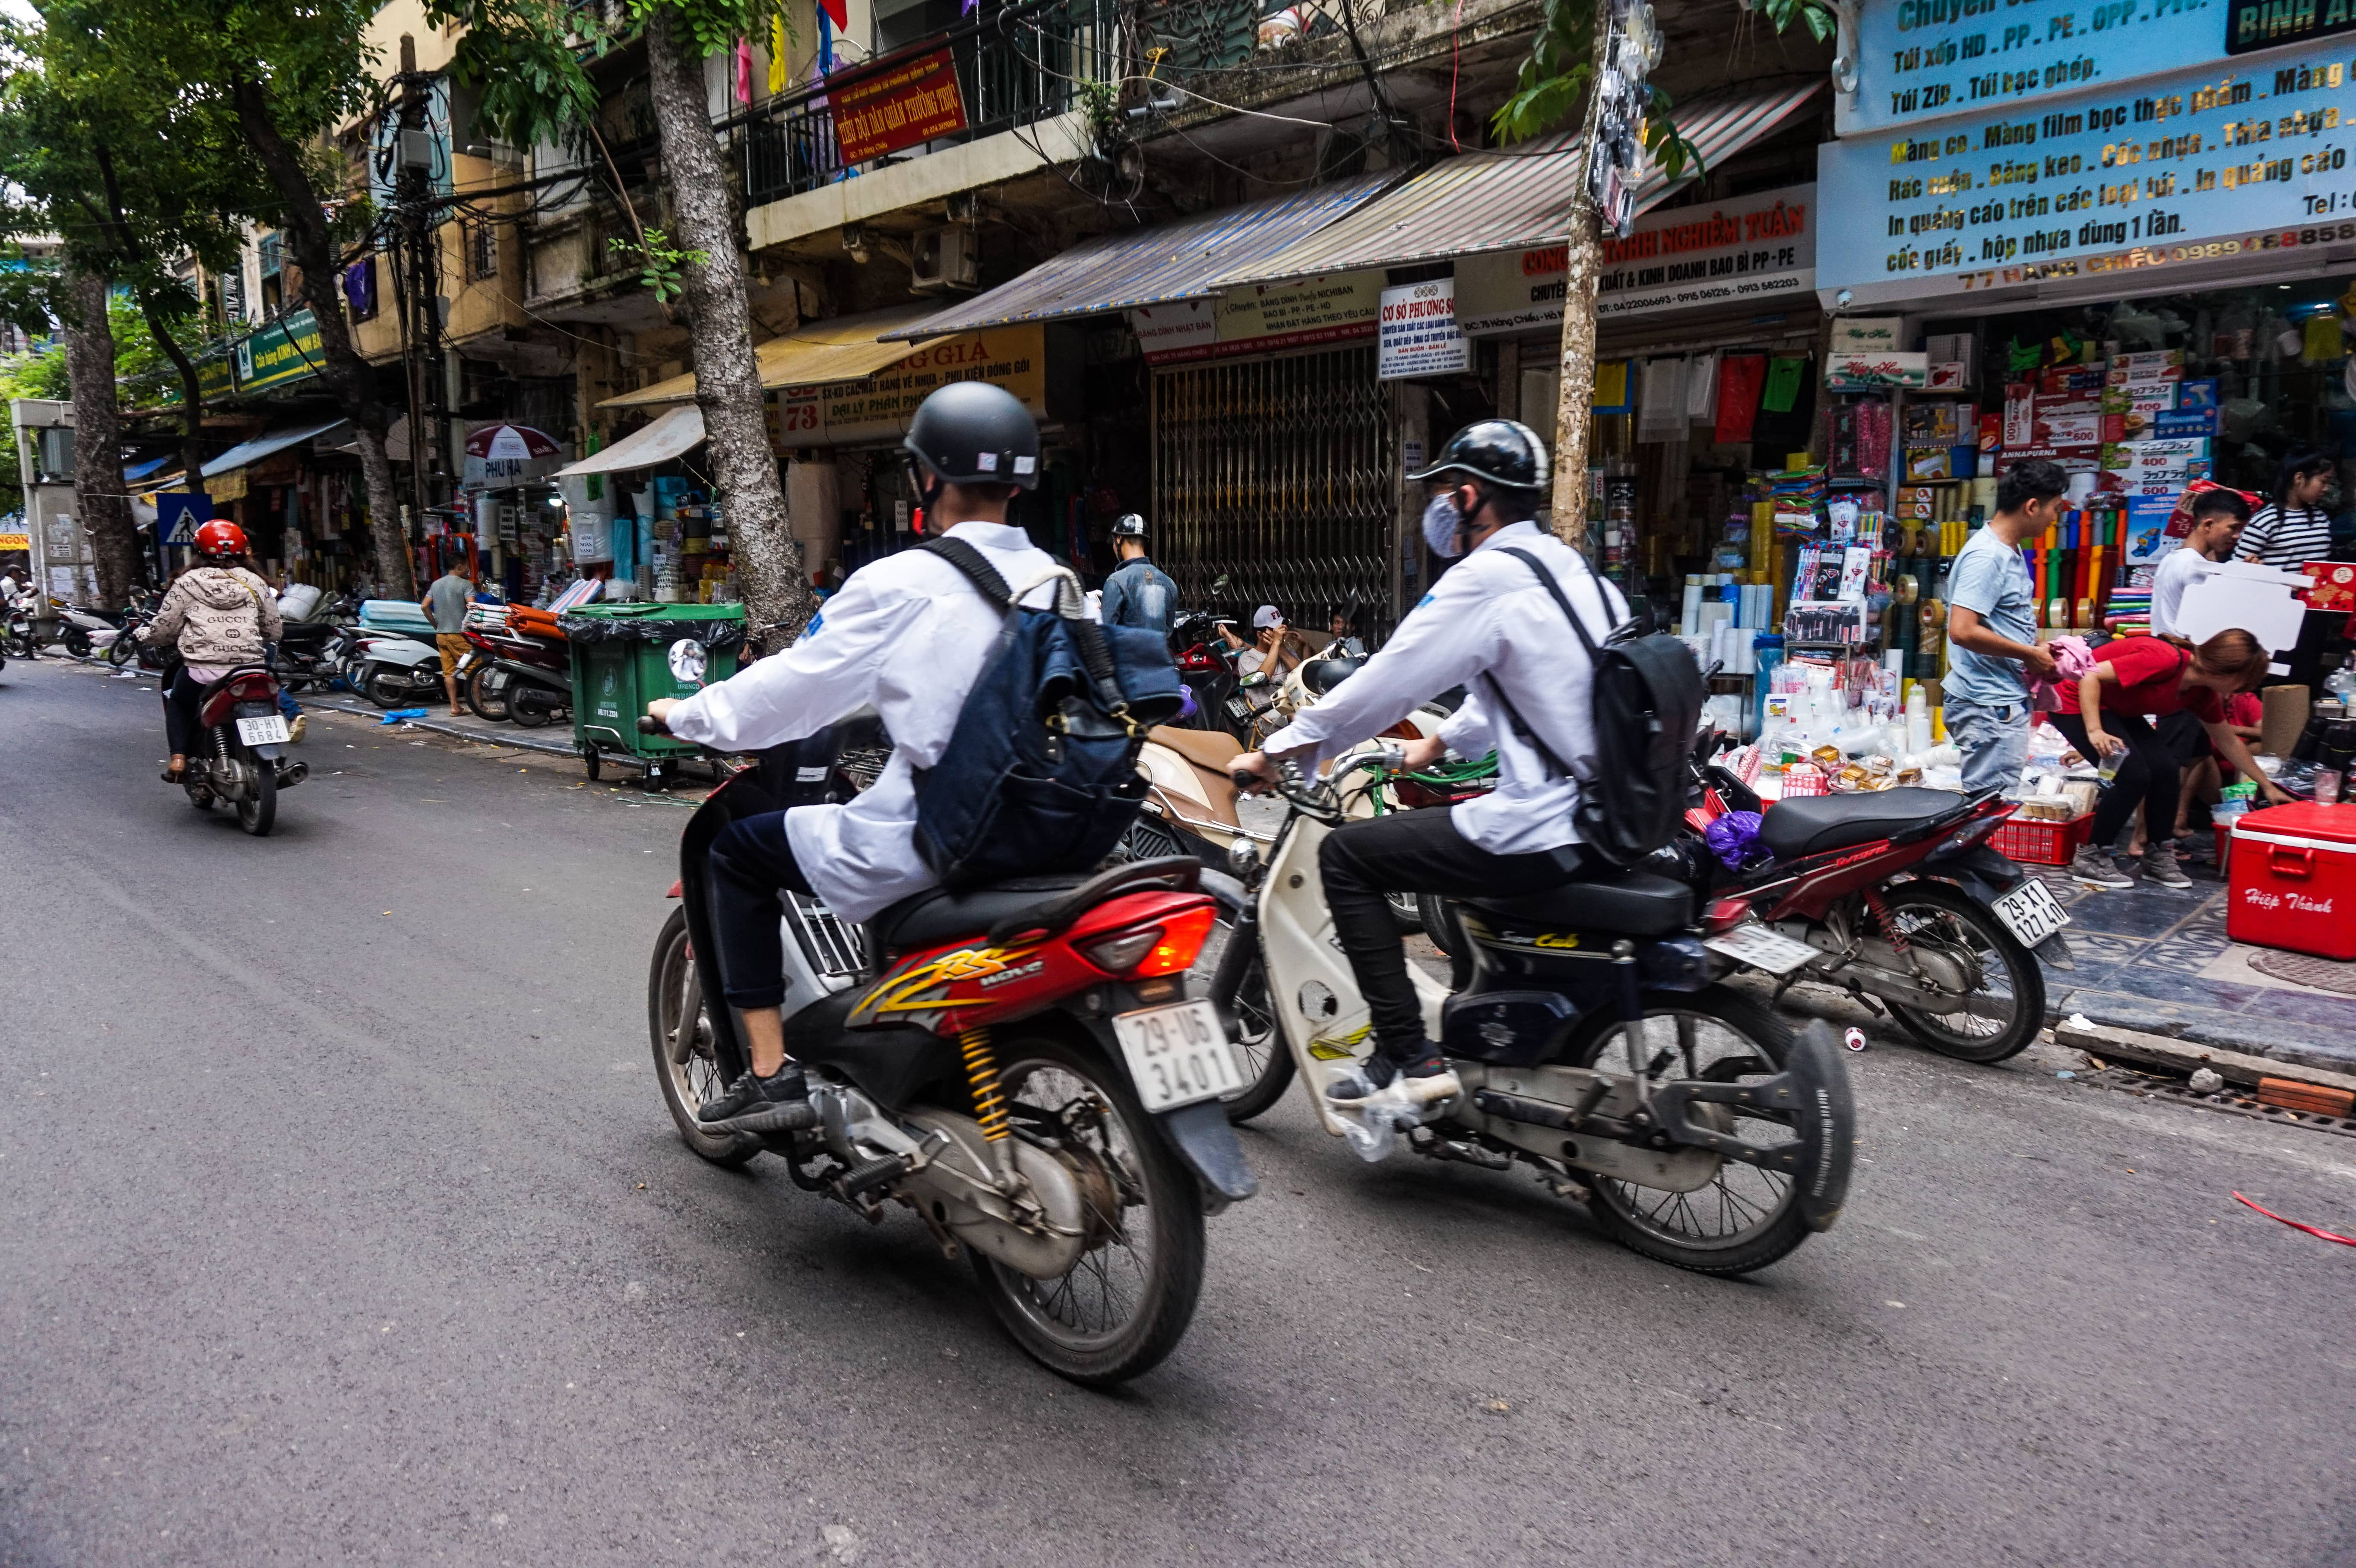 The Streets of Vietnam •16 Remarkably Useful Things to Know Before Traveling to Vietnam | The Wanderful Me